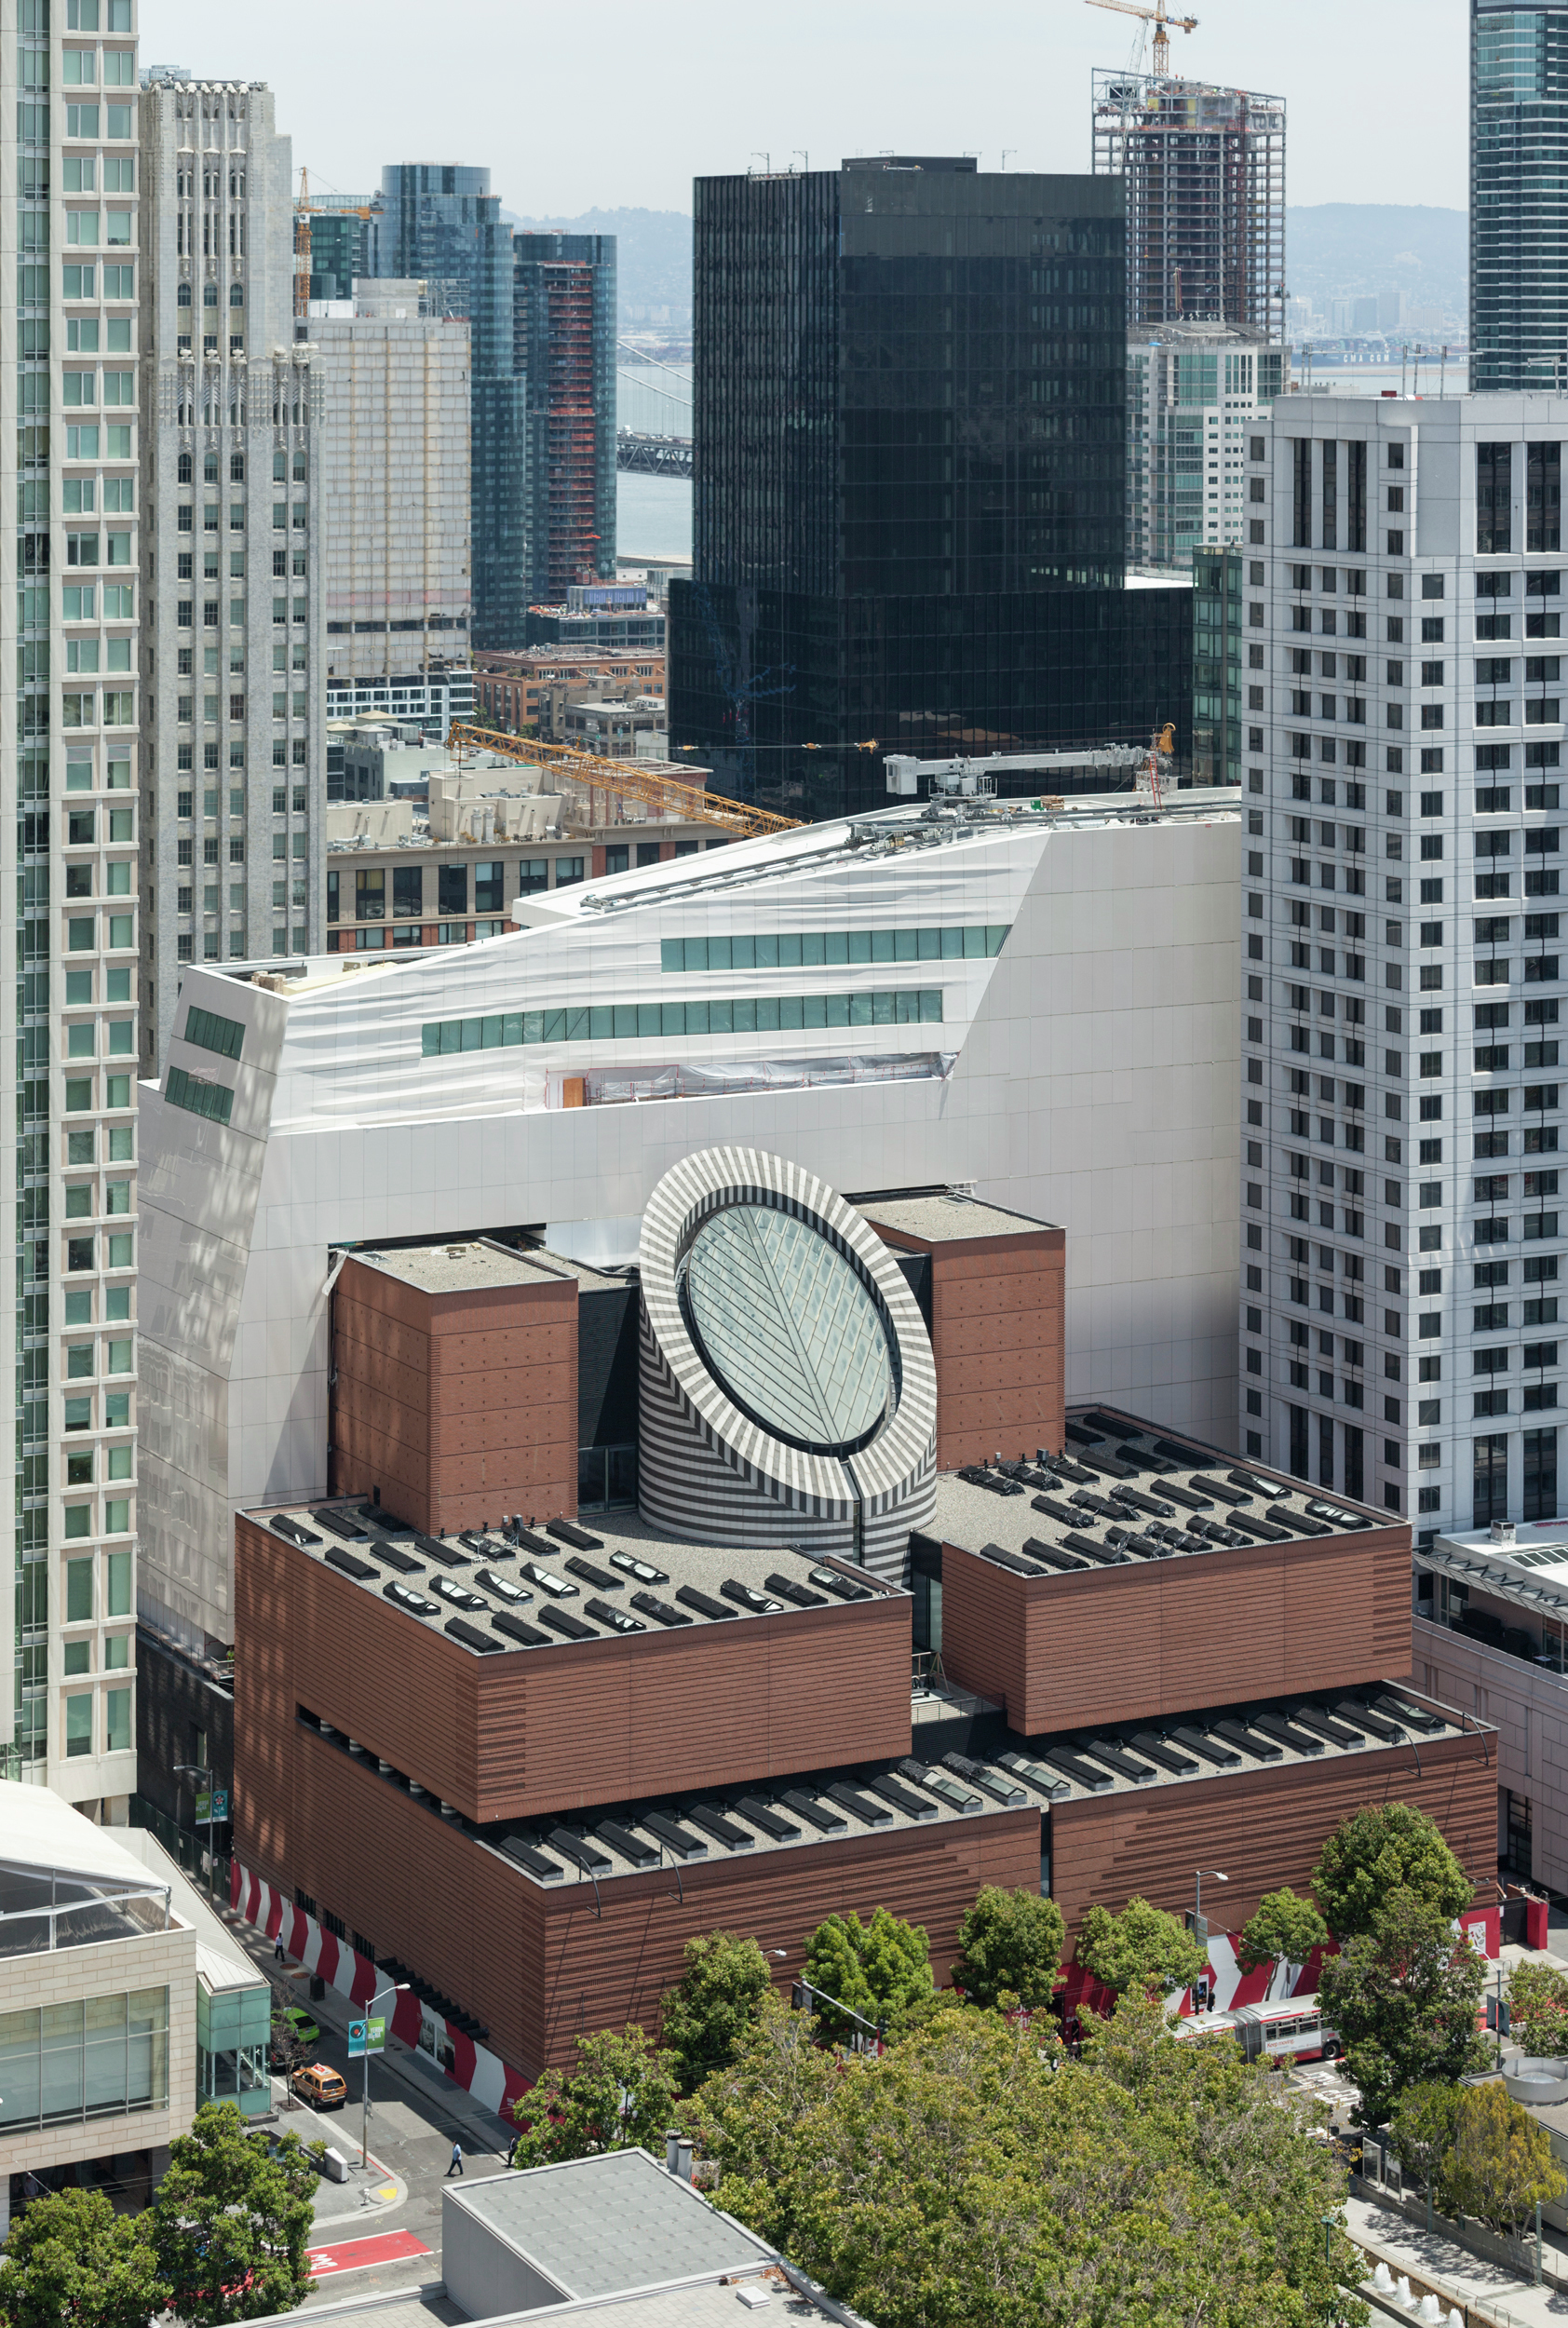 Snhetta' Sfmoma Expansion Nears Completion - 9